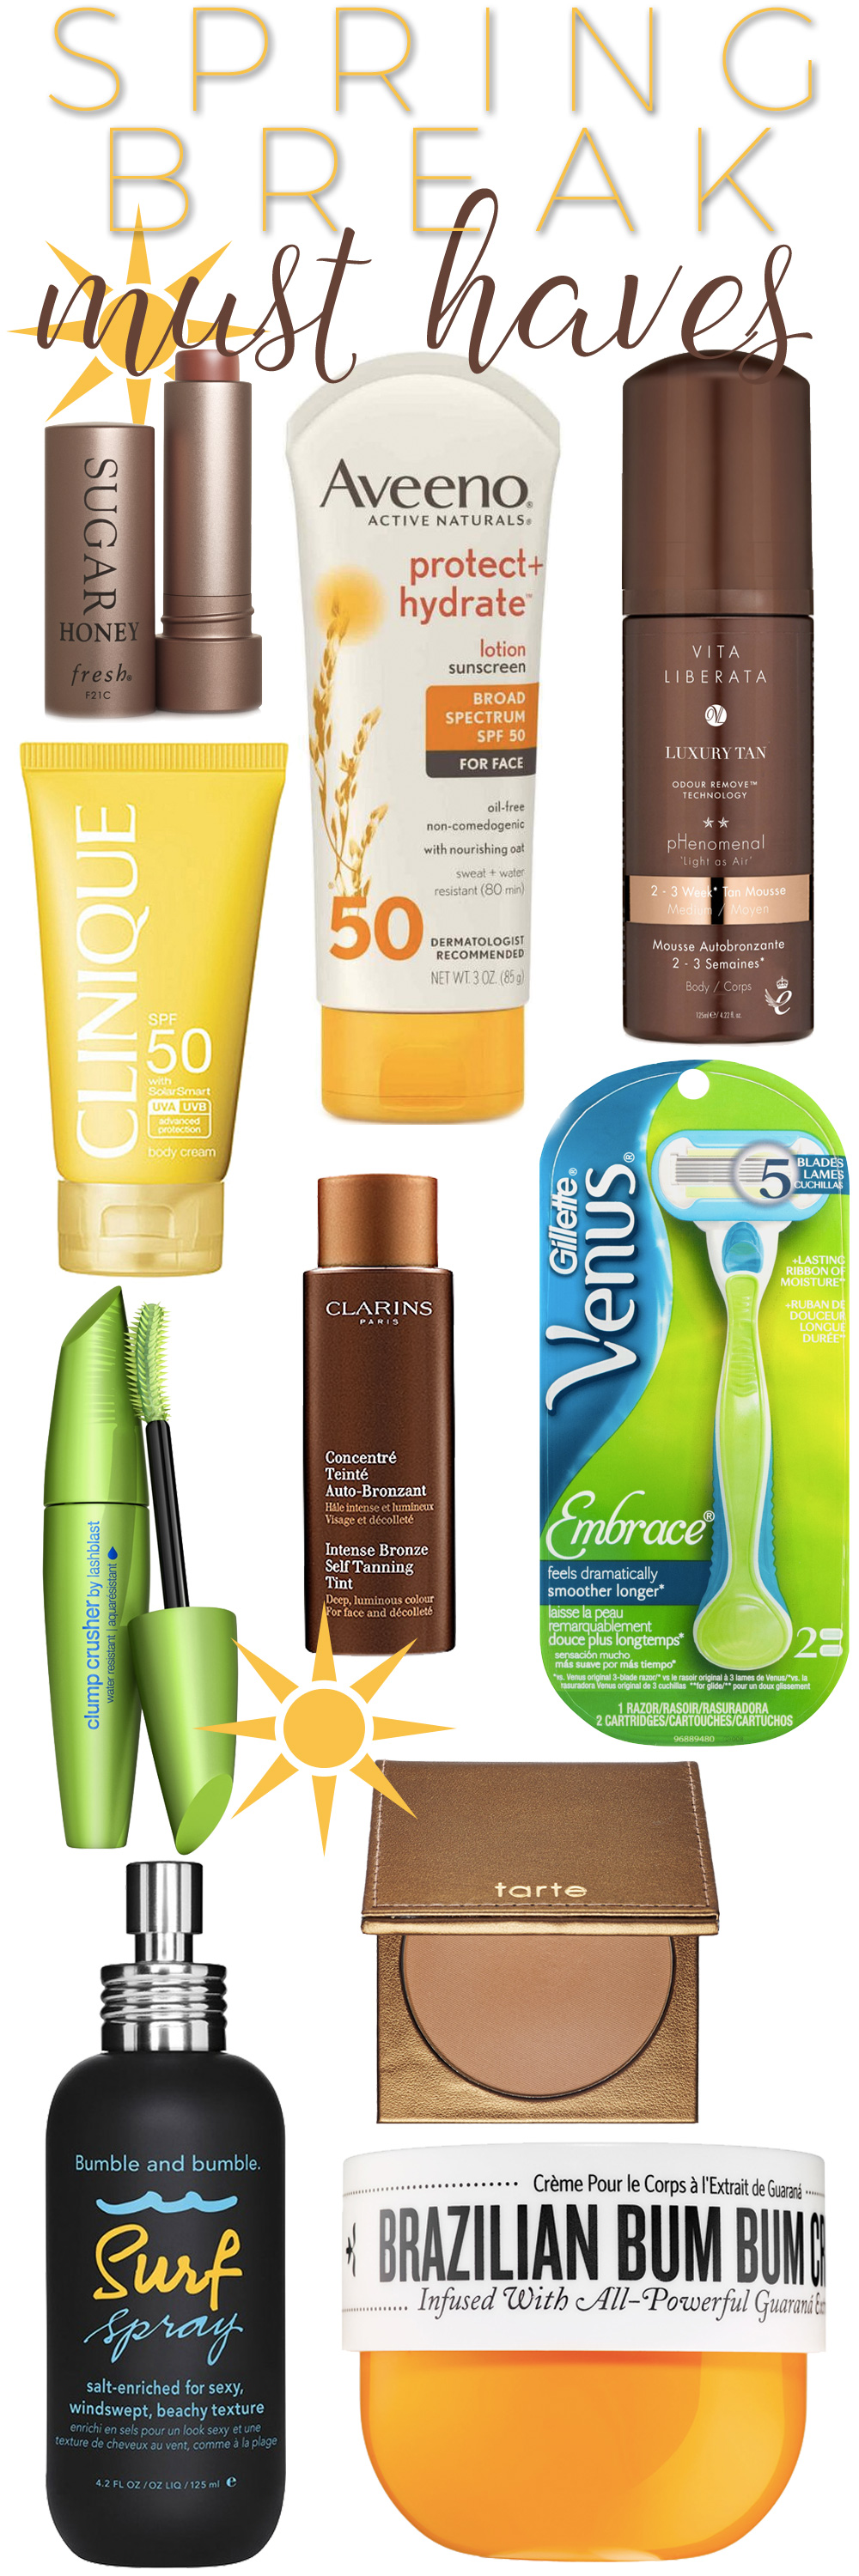 Top 10 Spring Break Beauty Essentials